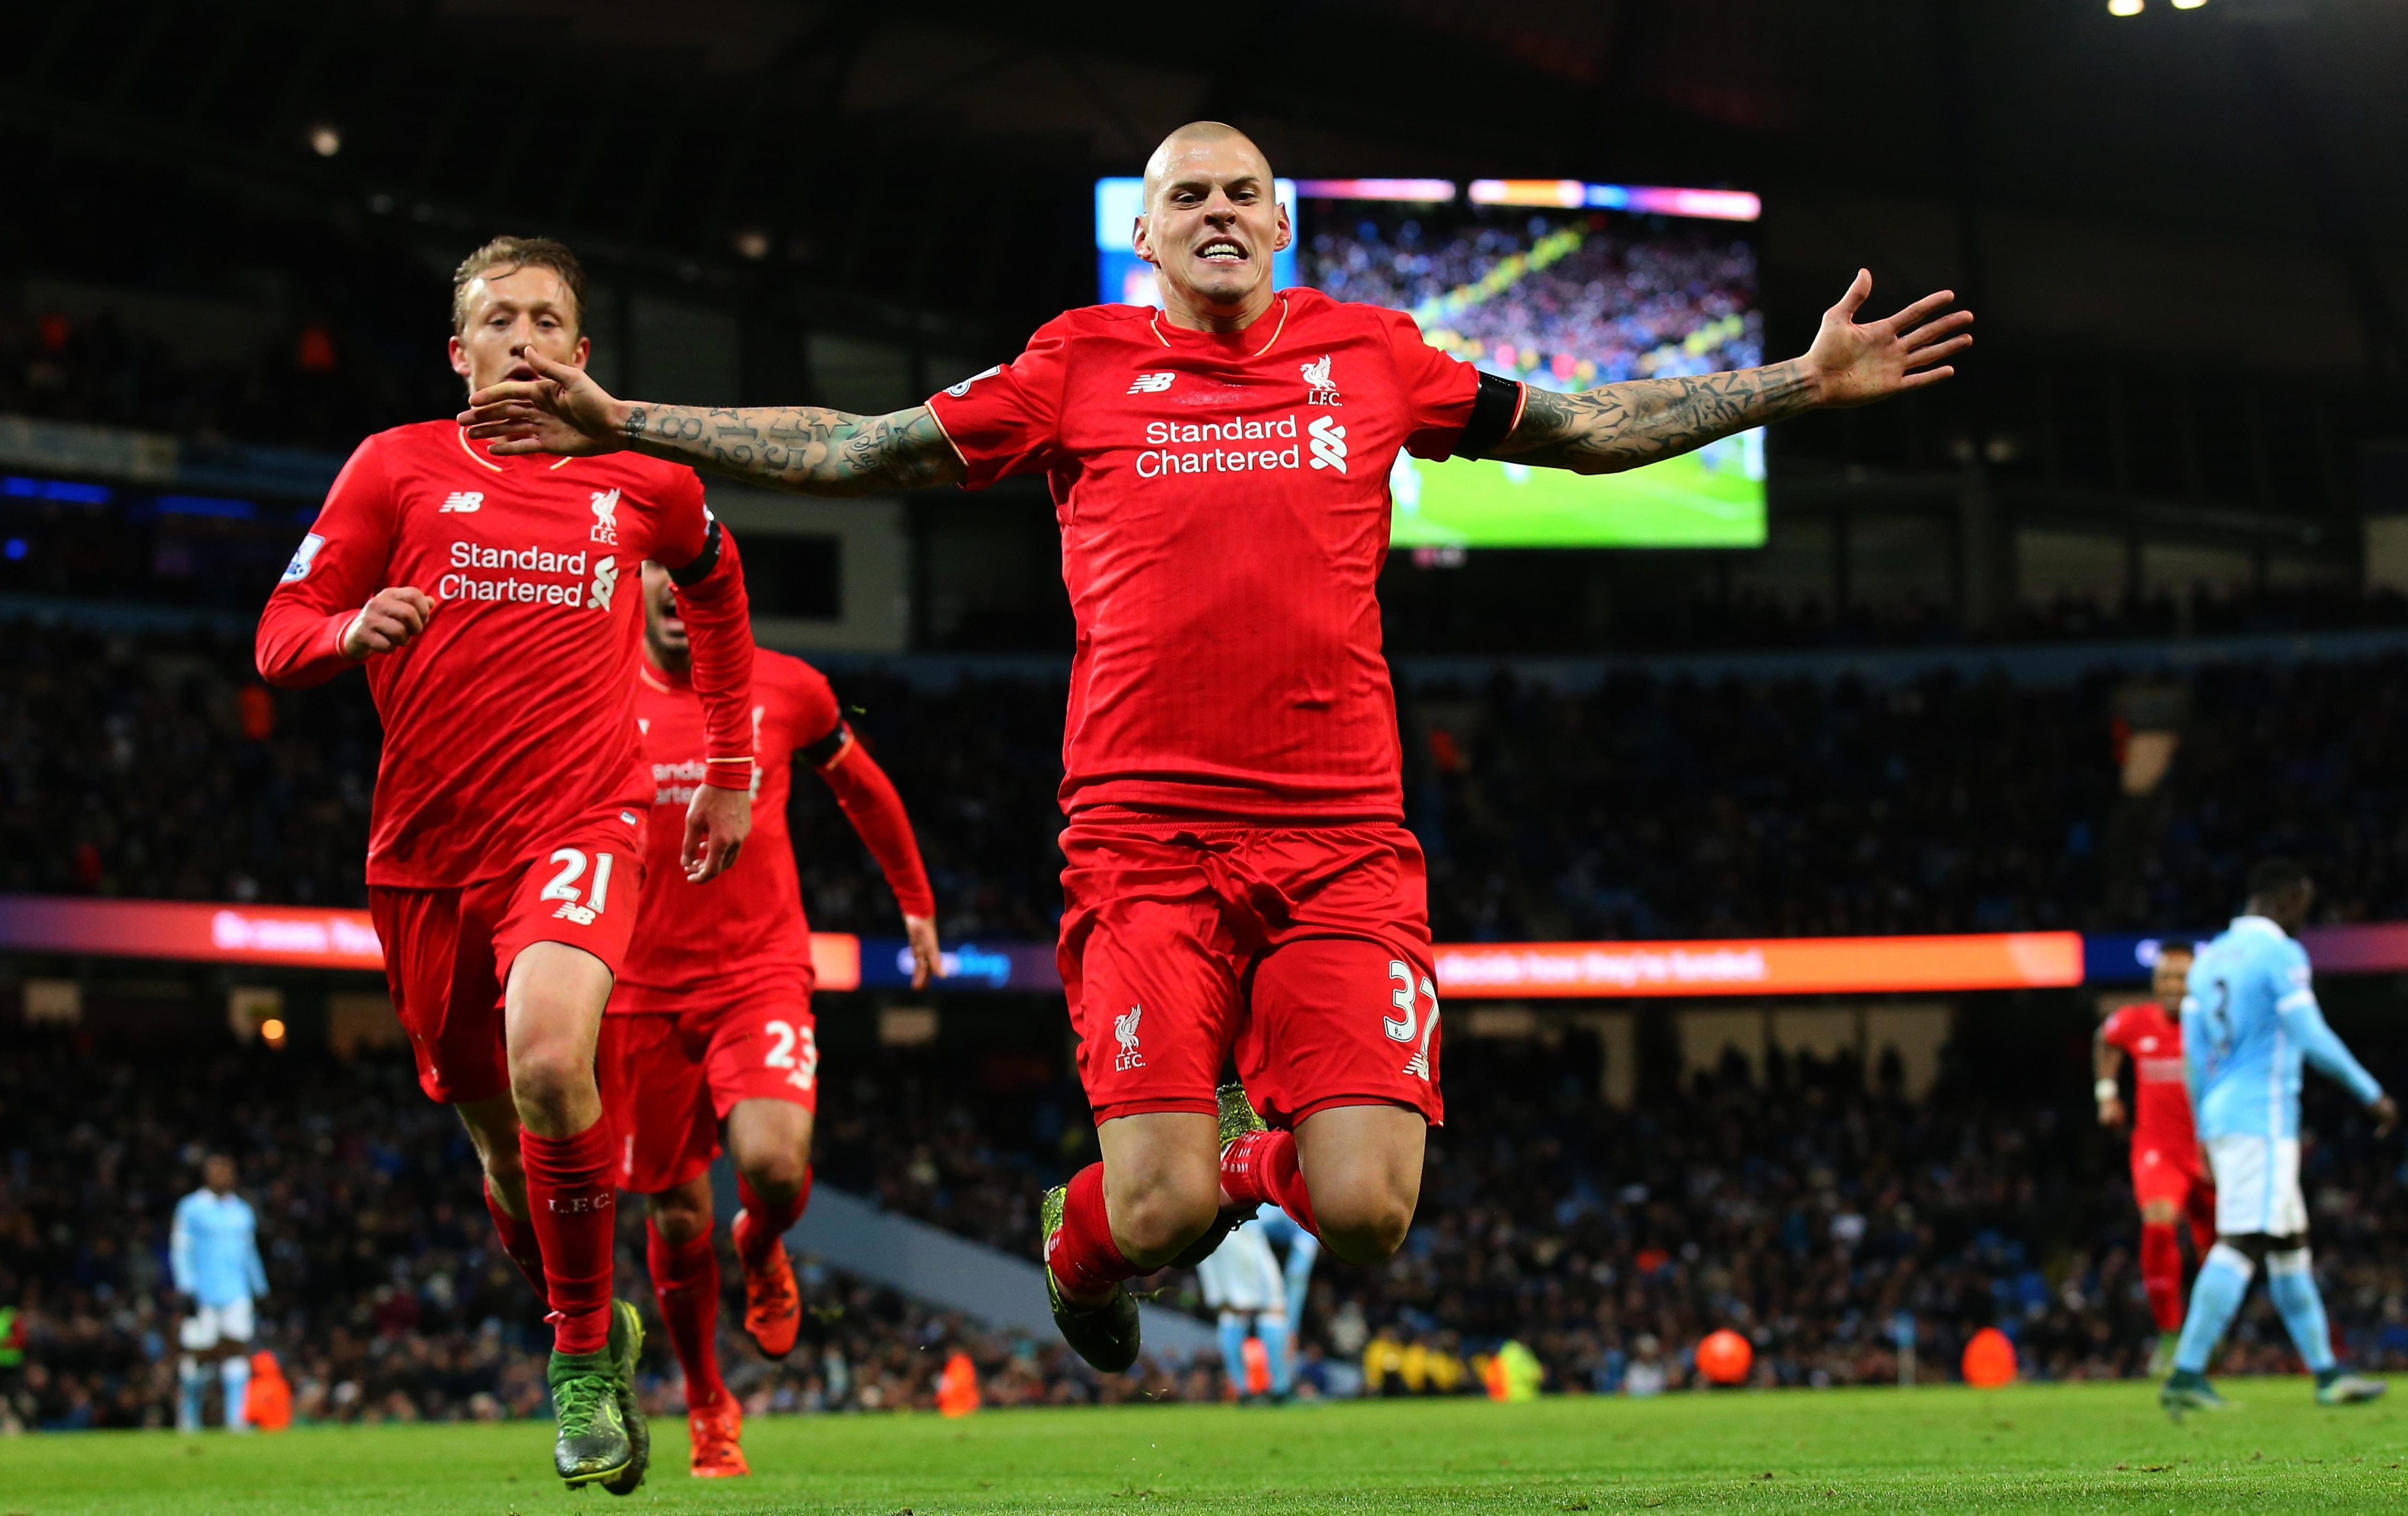 Skrtel was always a goal threat at Anfield